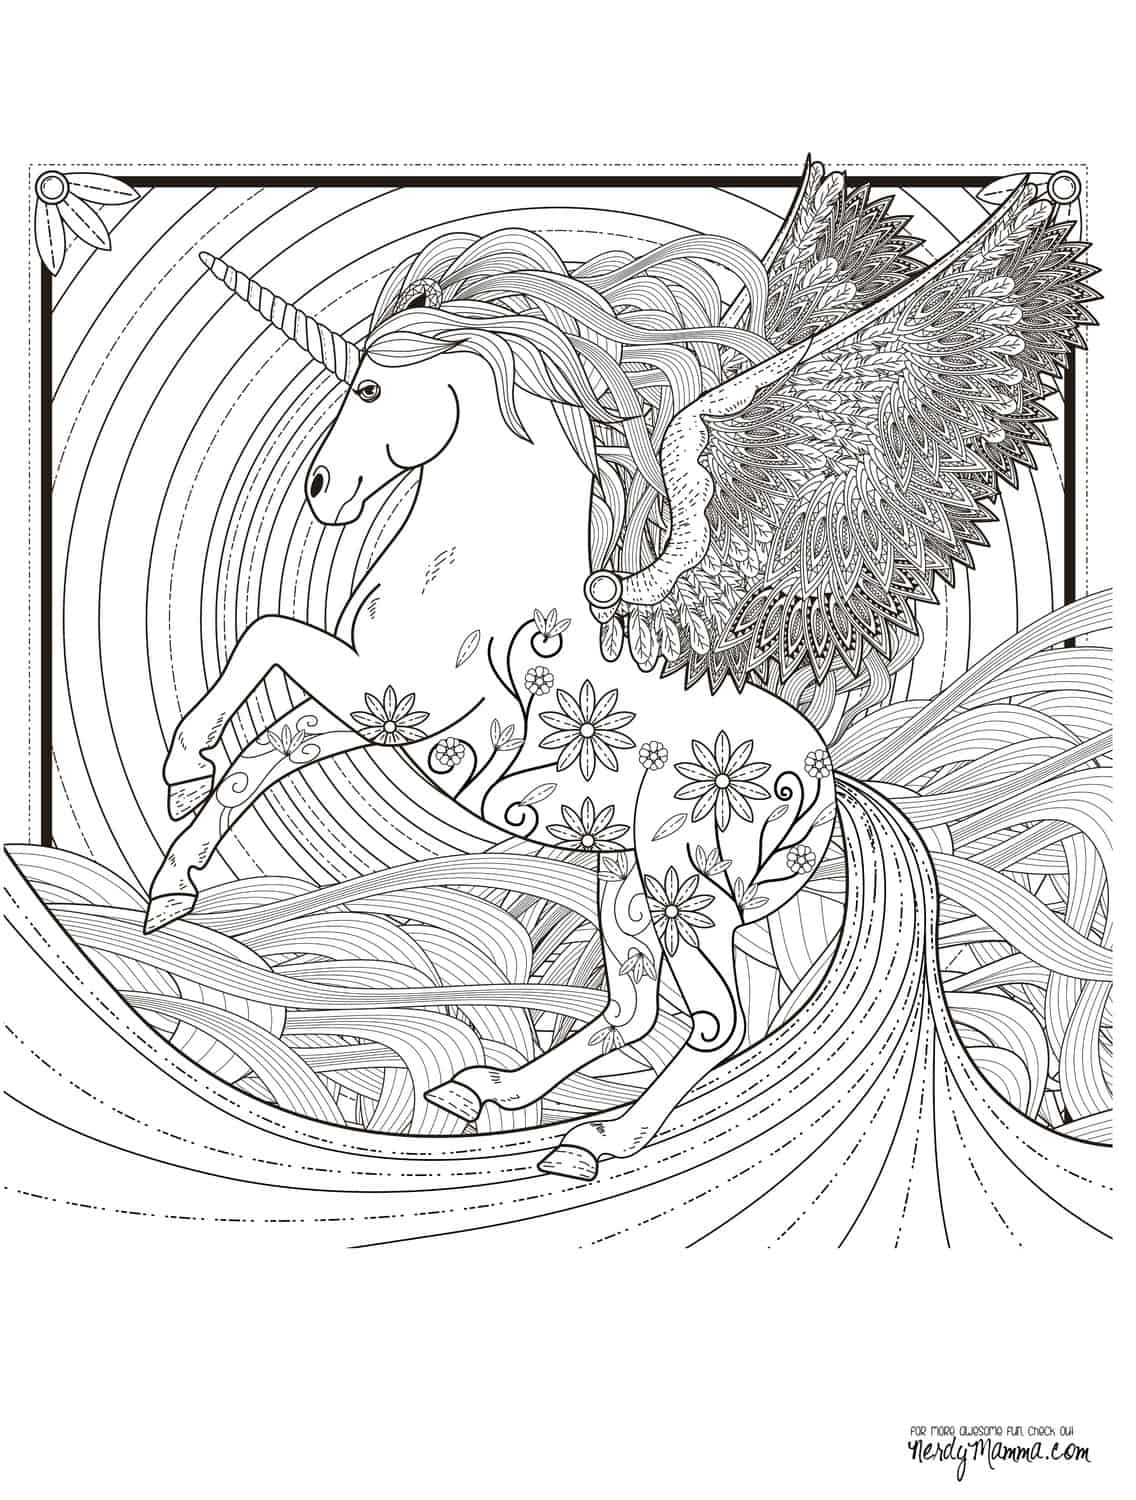 adult unicorn coloring pages 11 Free Printable Adult Coloring Pages adult unicorn coloring pages